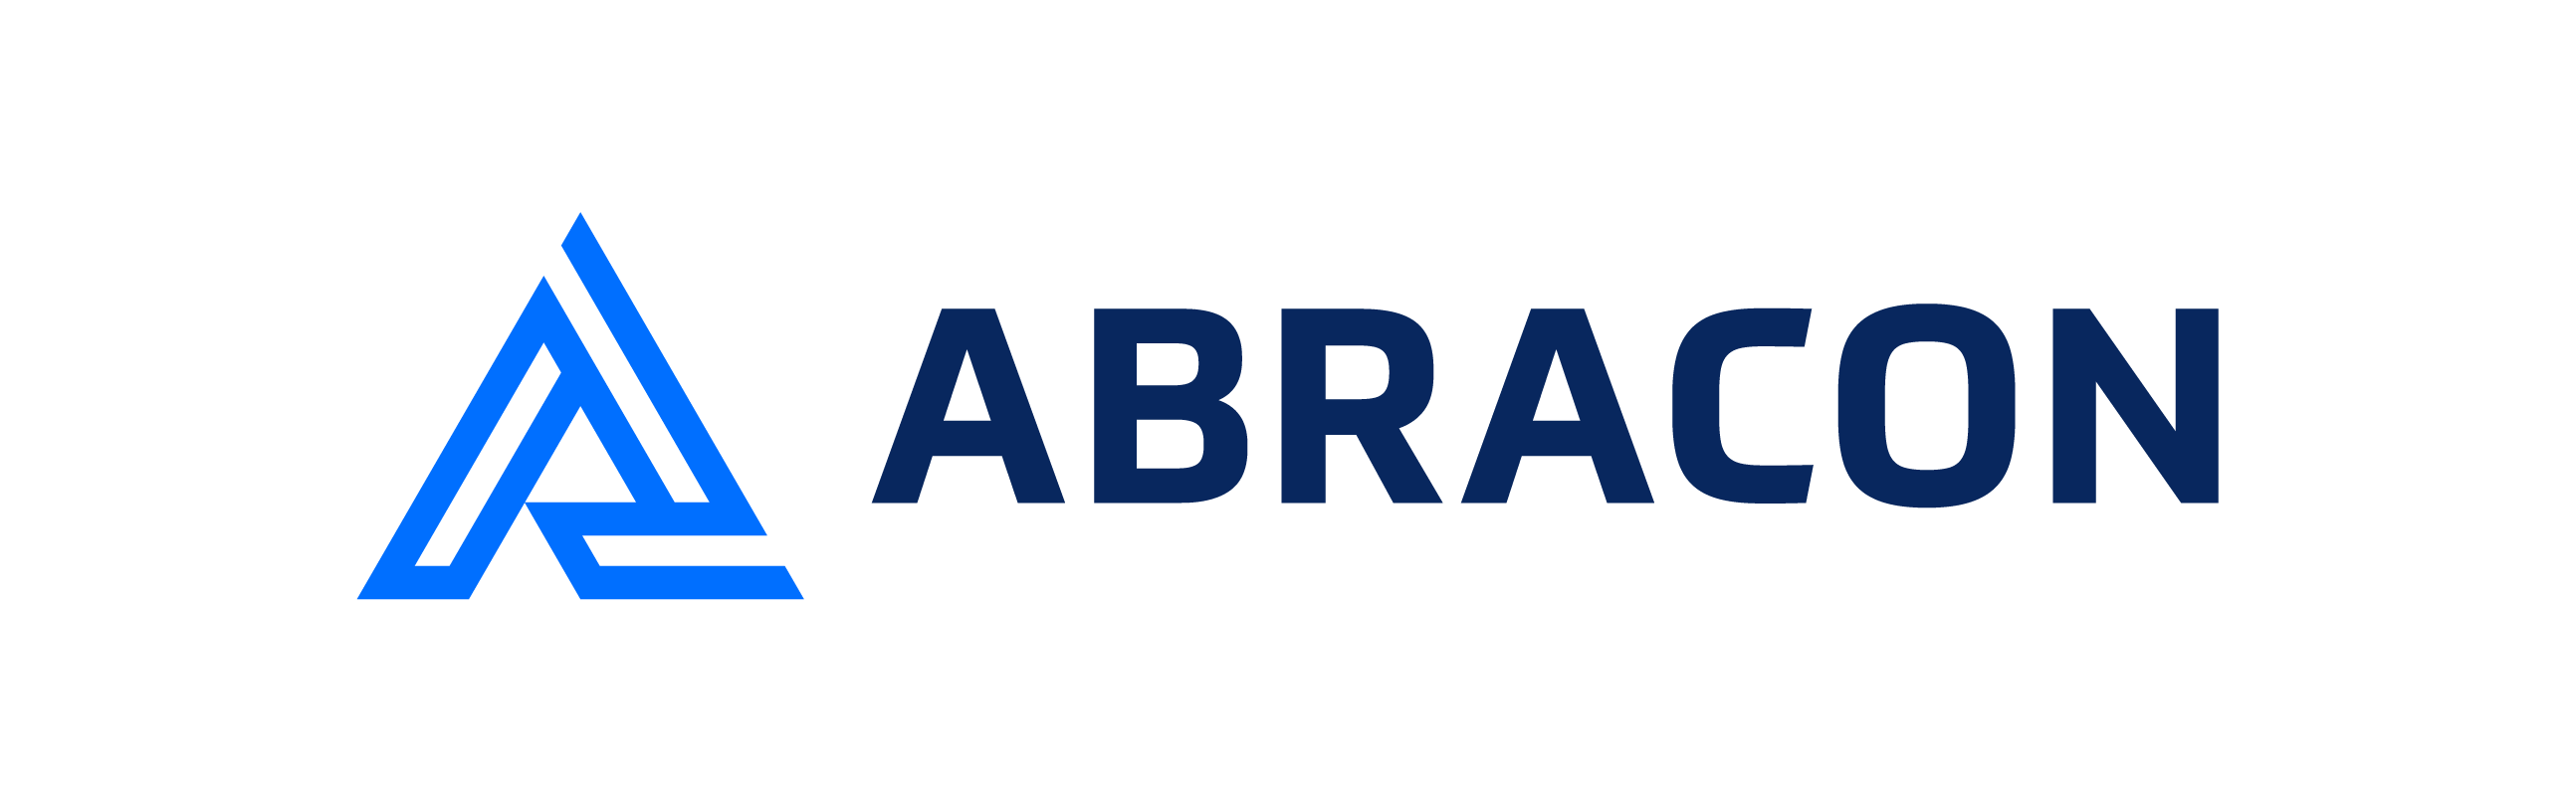 Abracon LLC